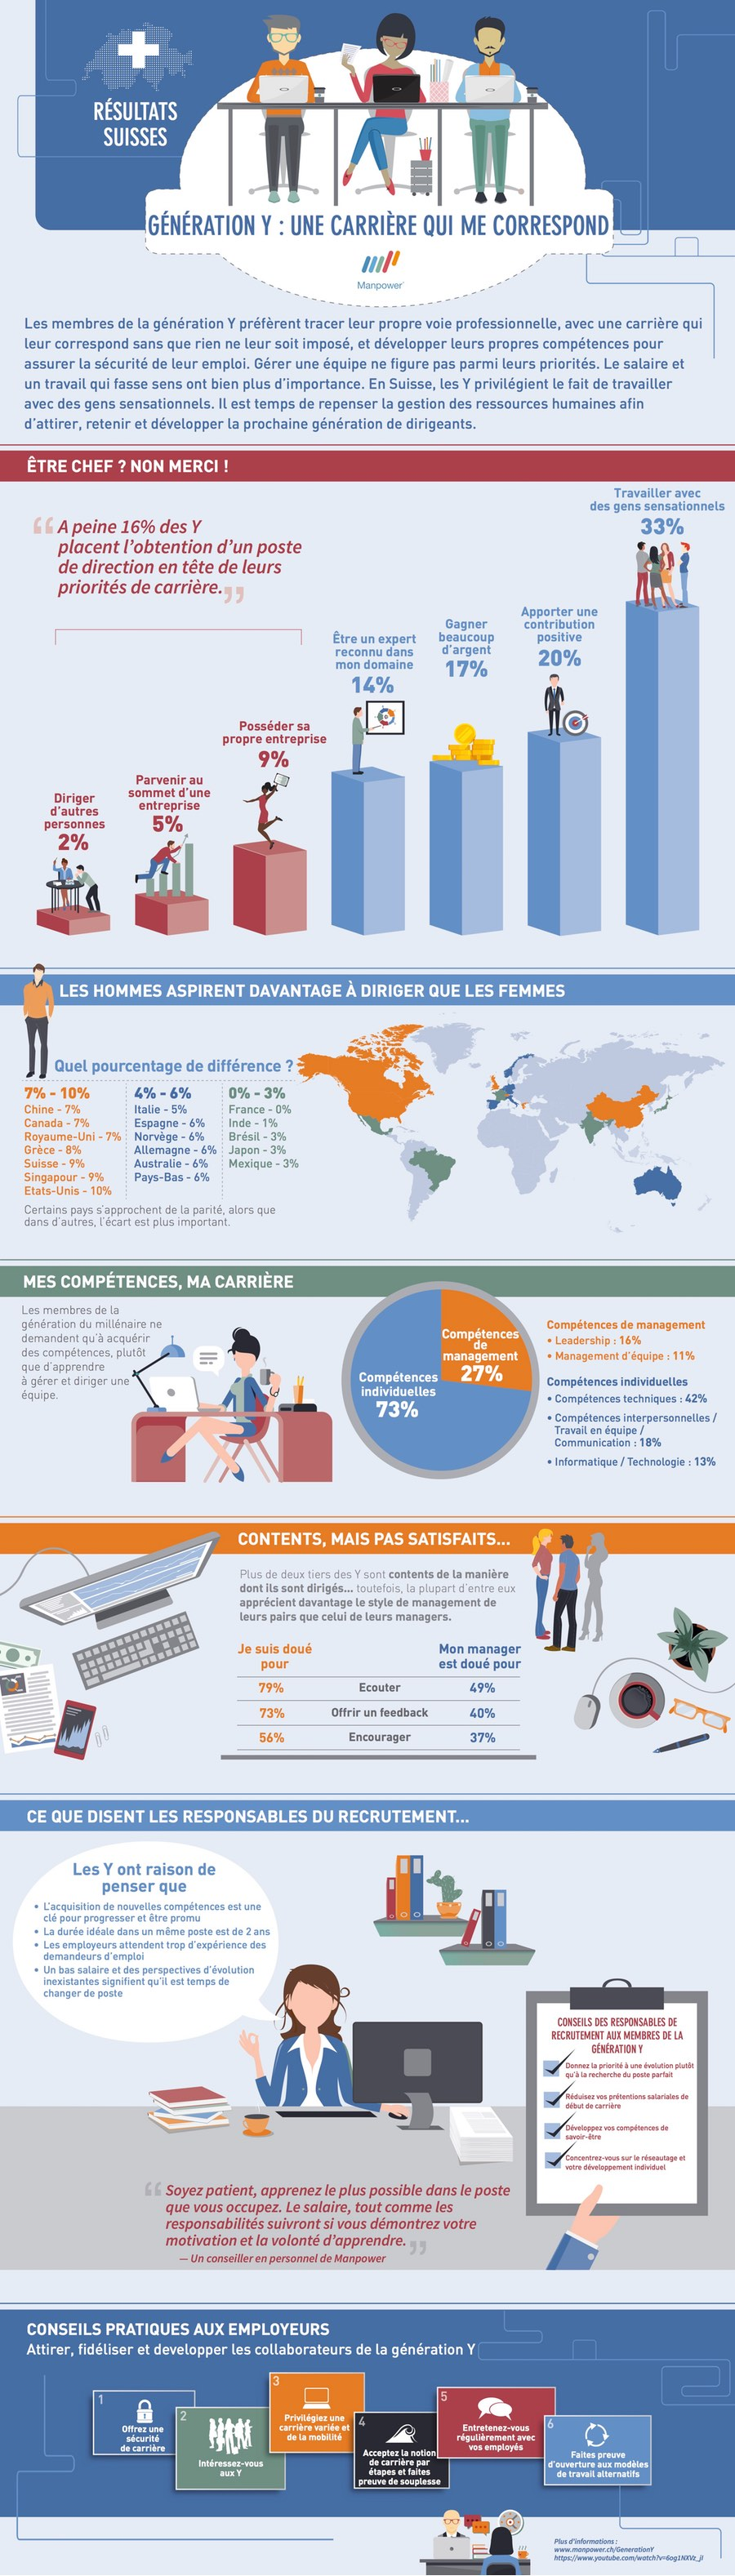 Infographie carriere manpower suisse